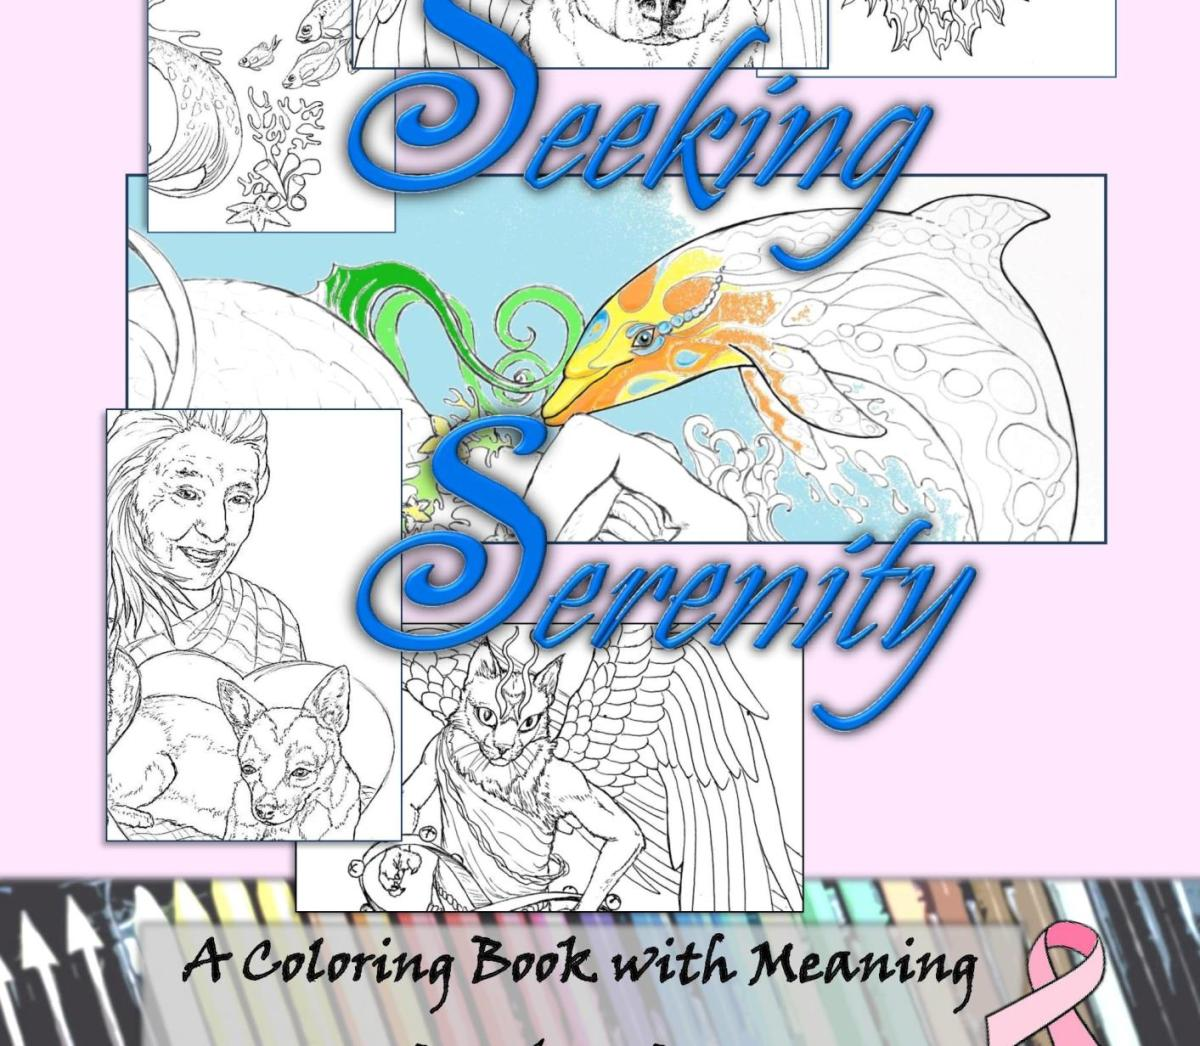 Adult Coloring Books: Childish or Beneficial?